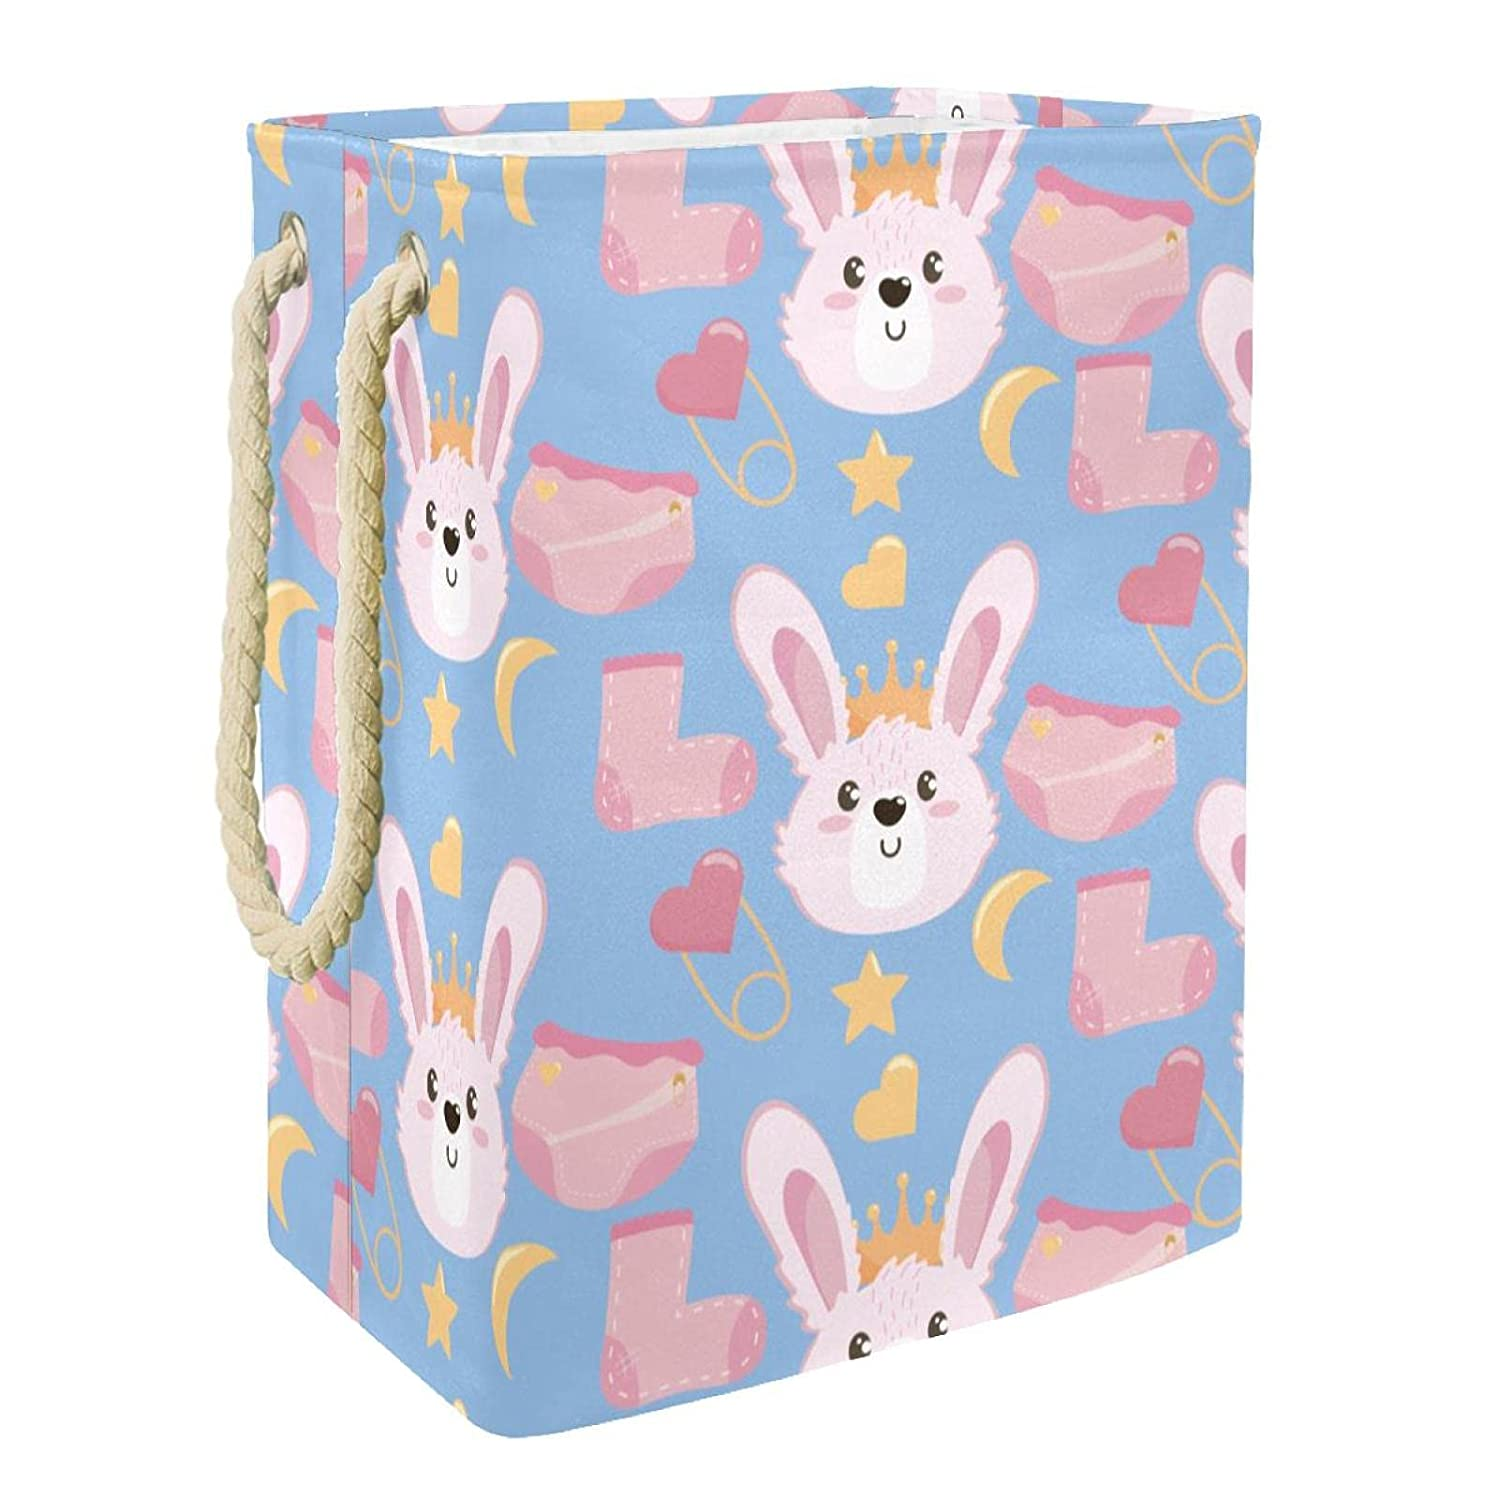 Toy Storage Basket Cute Rabbit Laundry Foldable St Hamper Special New products, world's highest quality popular! price for a limited time